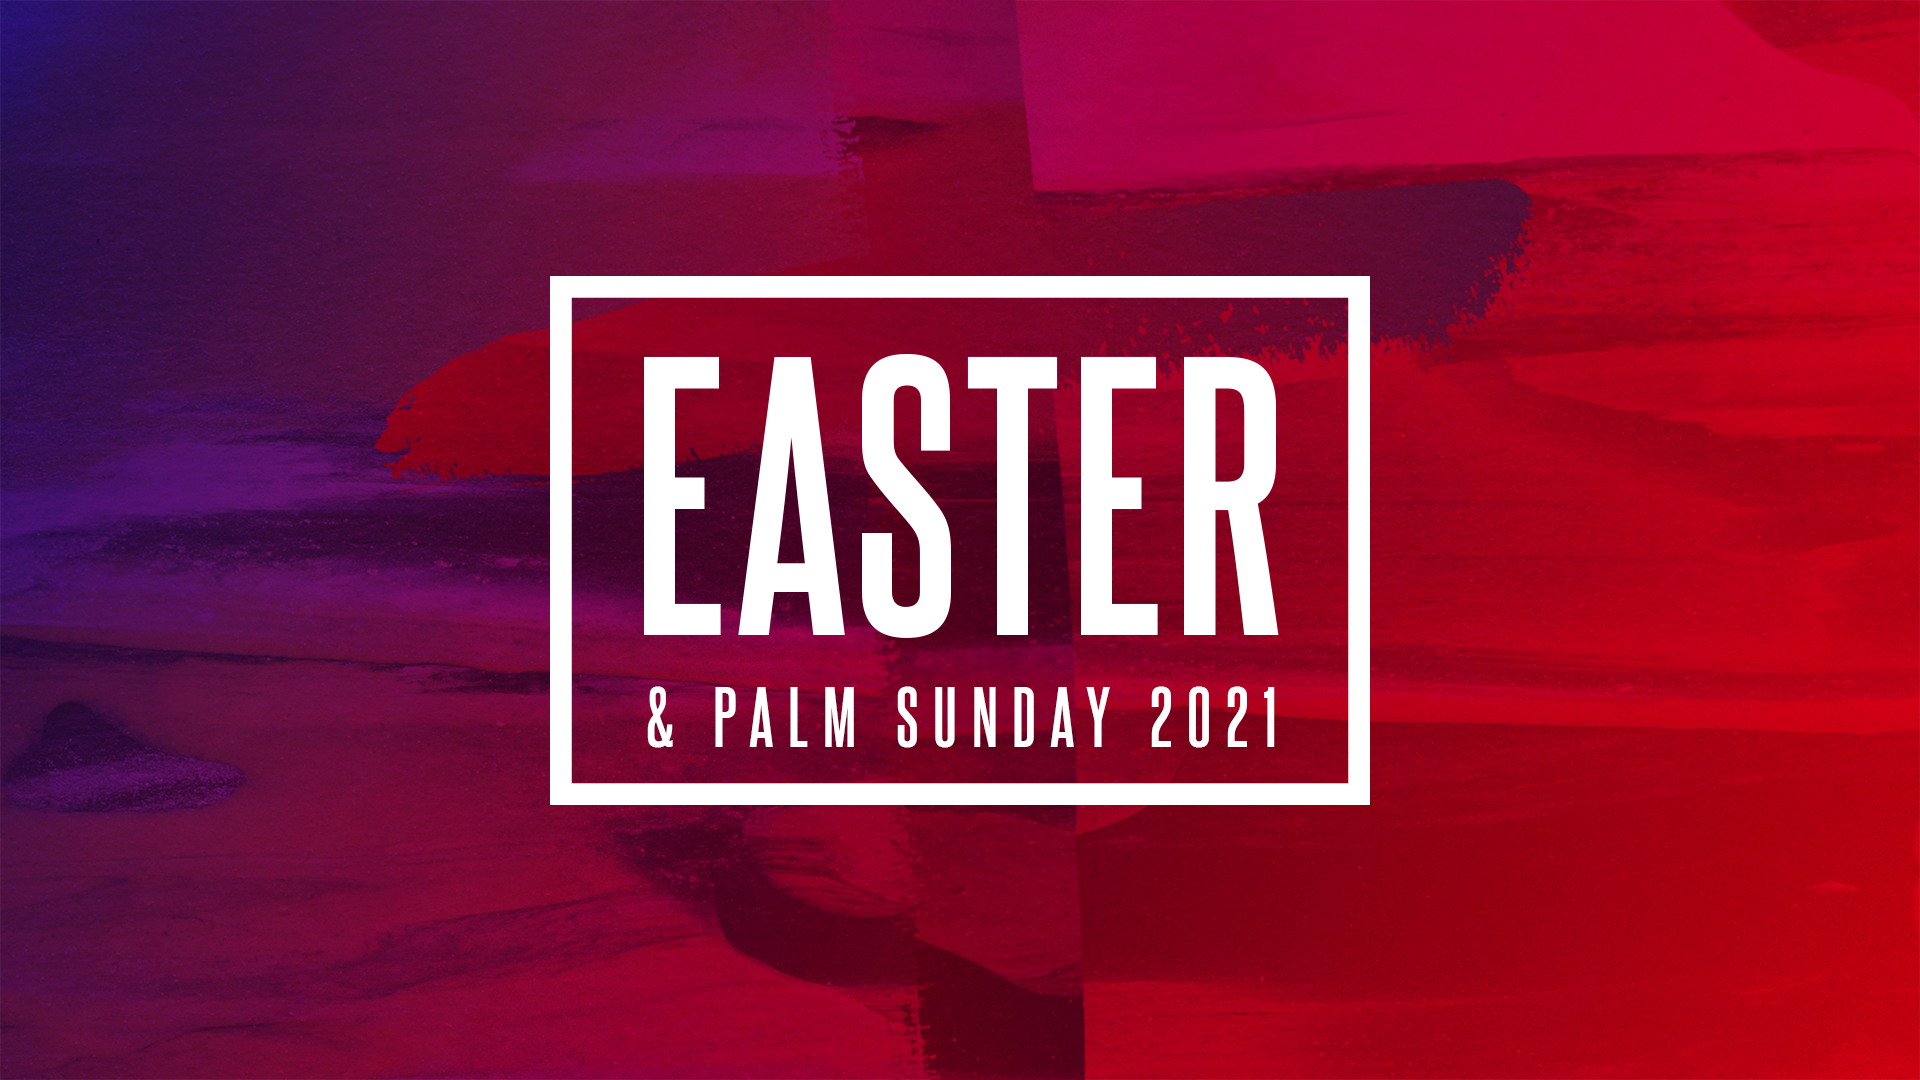 Easter & Palm Sunday 2021 banner